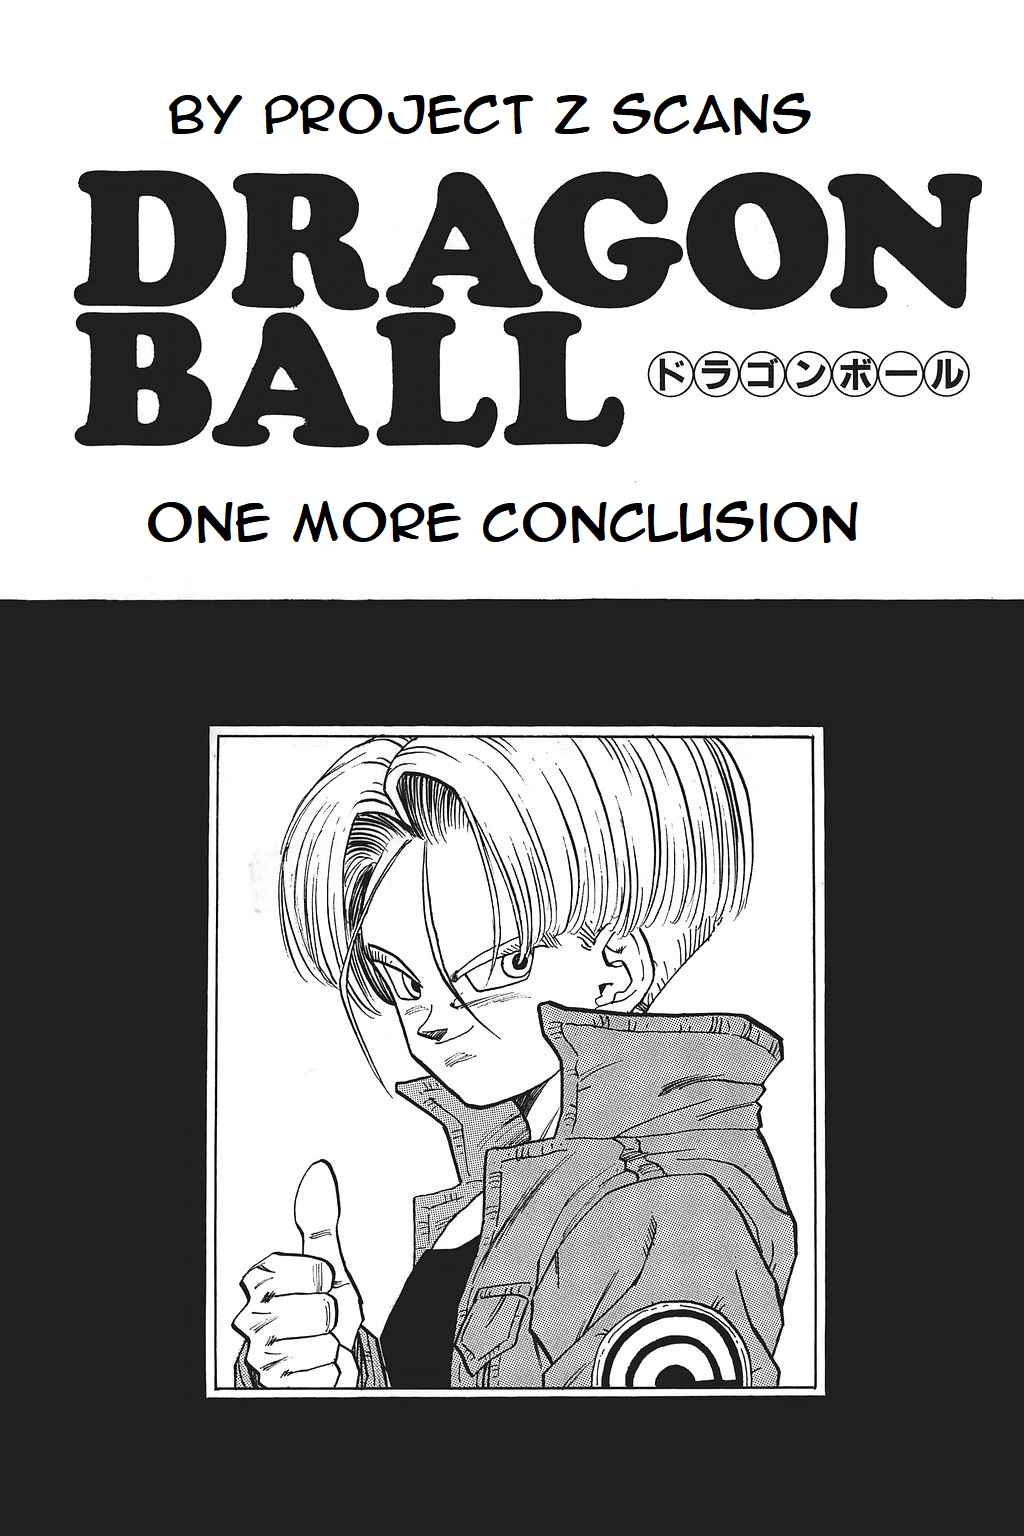 Dragon Ball Vol. 35 Ch. 419 One More Conclusion